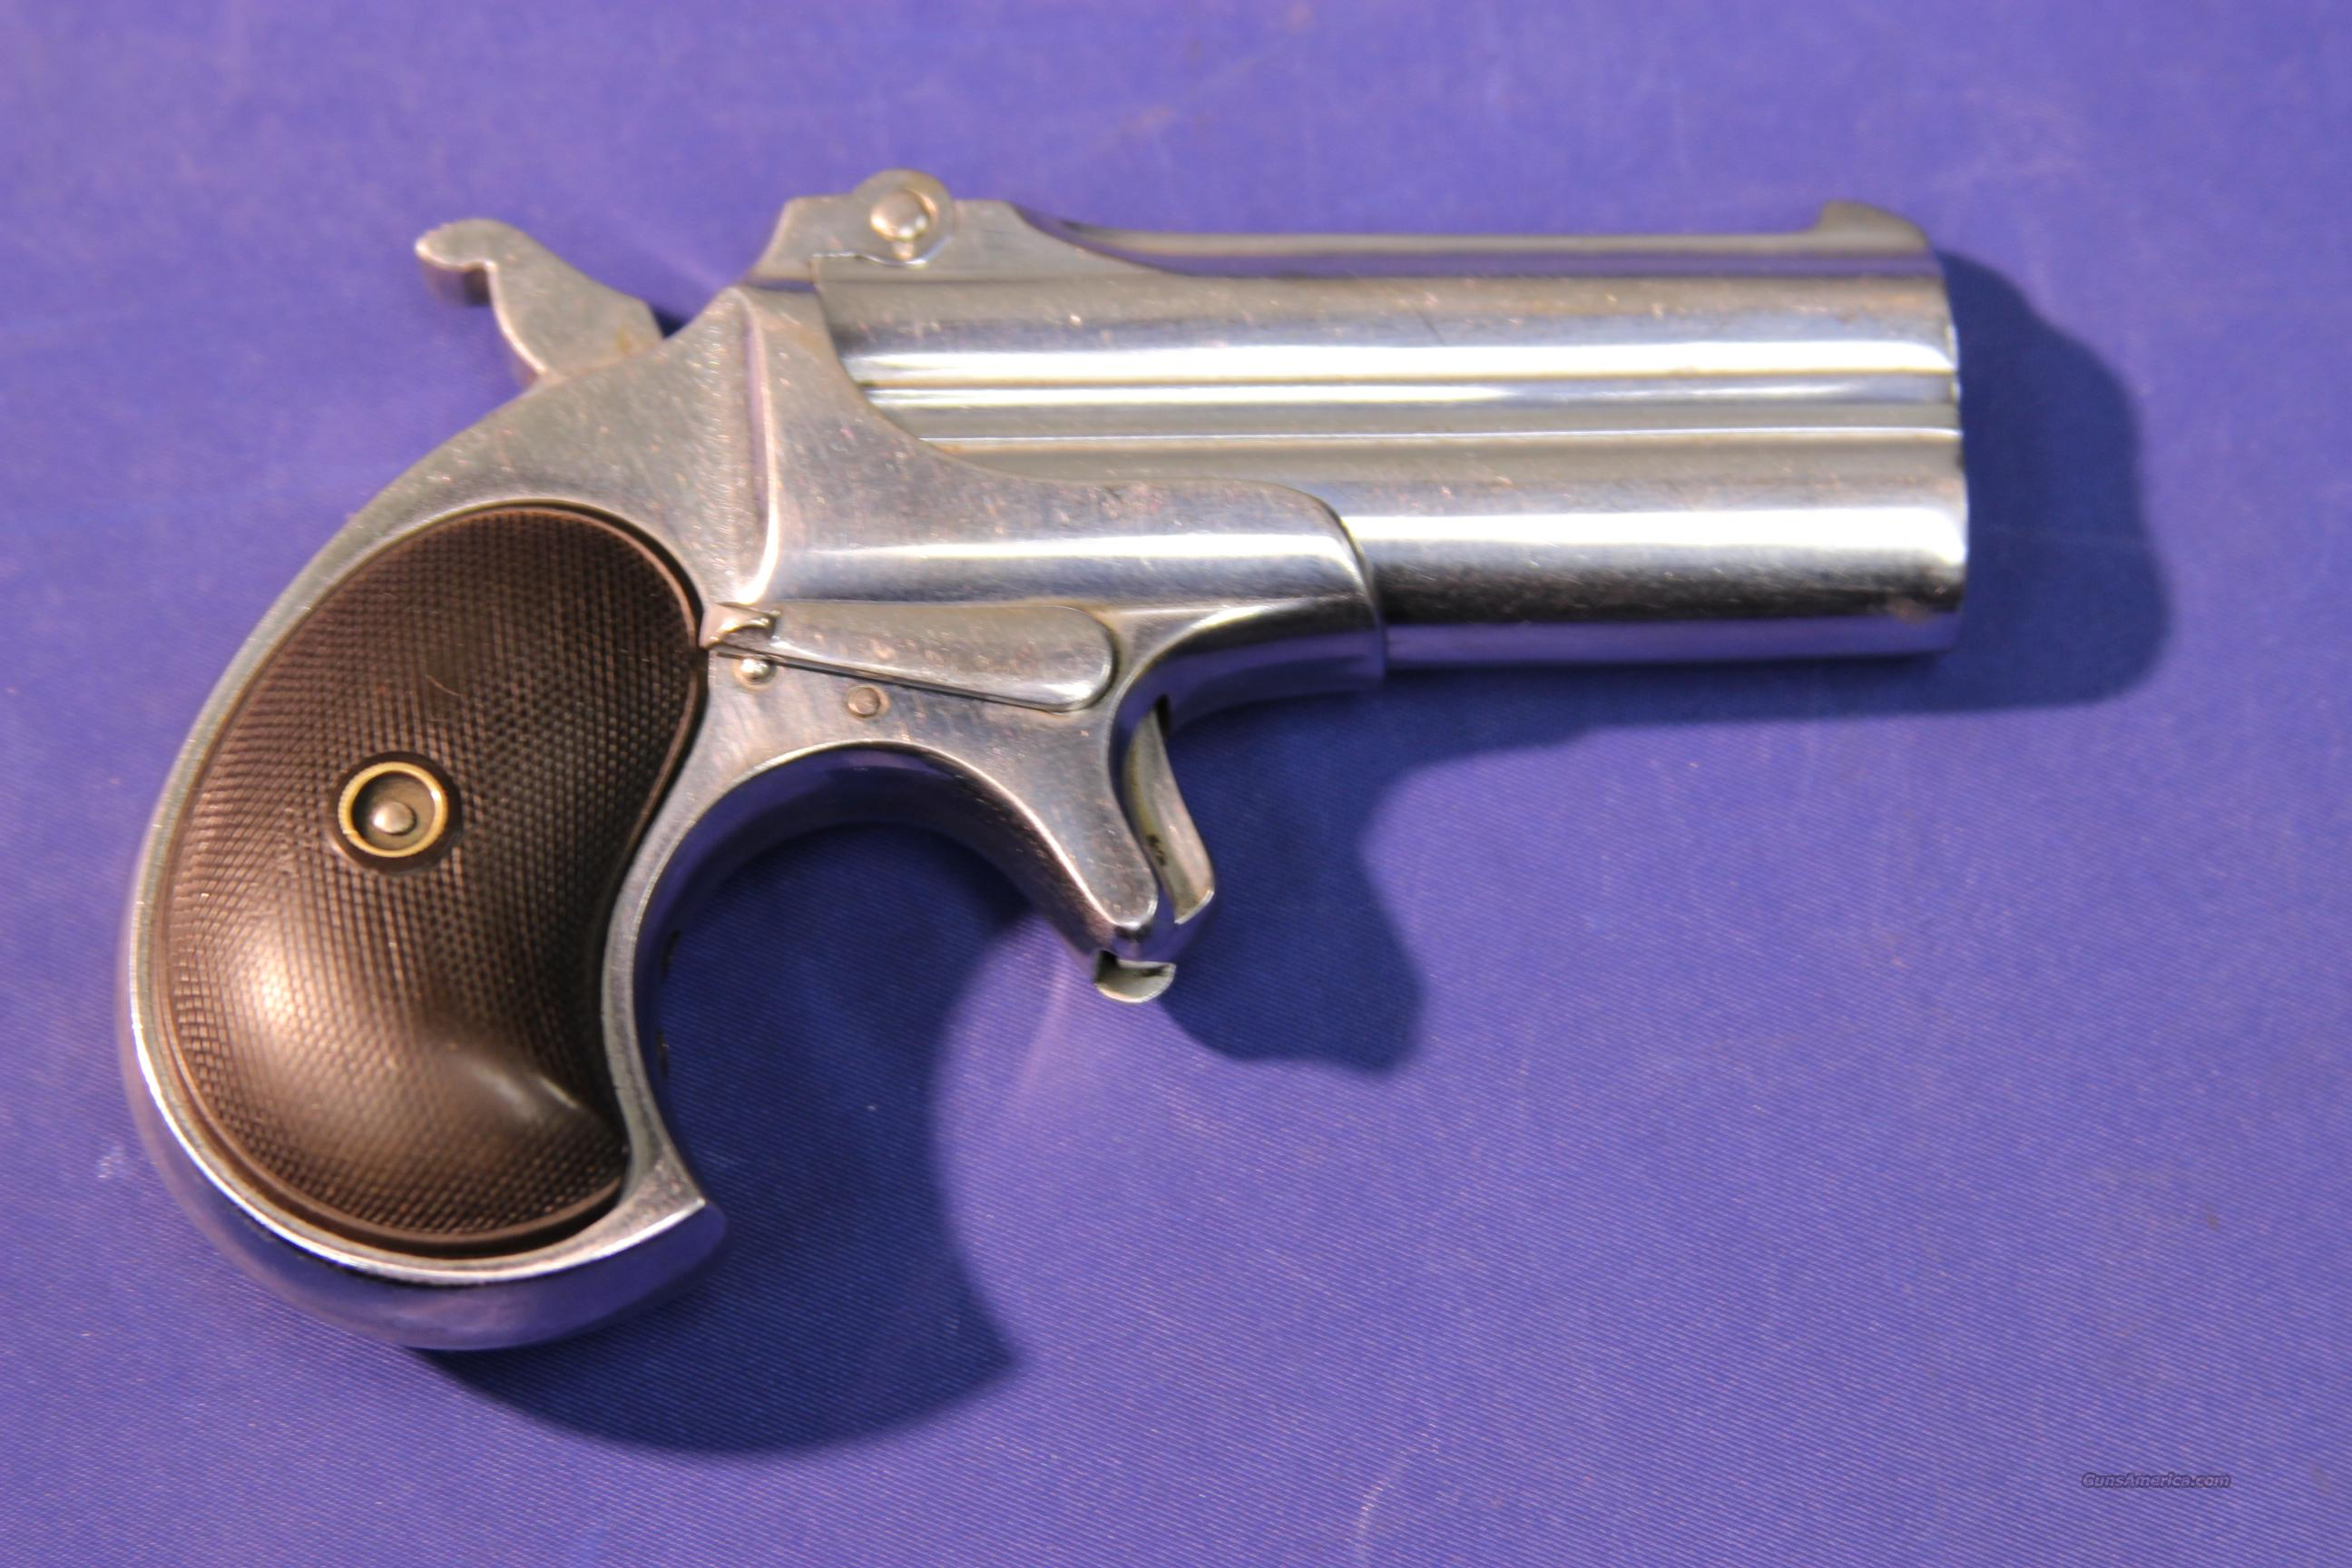 REMINGTON DERRINGER .41 Rimfire Nickel Finish  Guns > Pistols > Remington Derringers